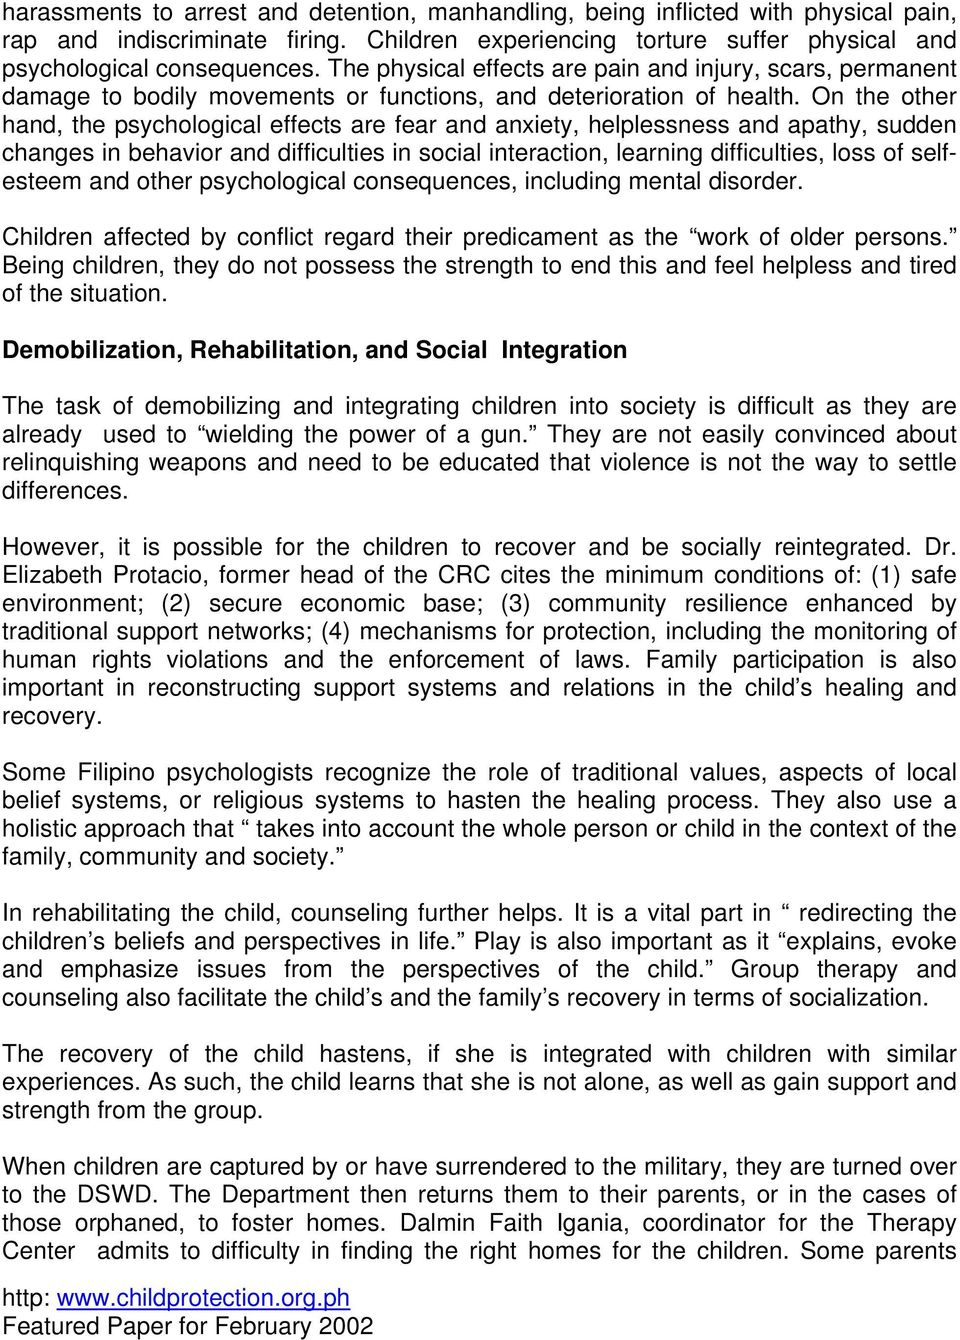 On the other hand, the psychological effects are fear and anxiety, helplessness and apathy, sudden changes in behavior and difficulties in social interaction, learning difficulties, loss of